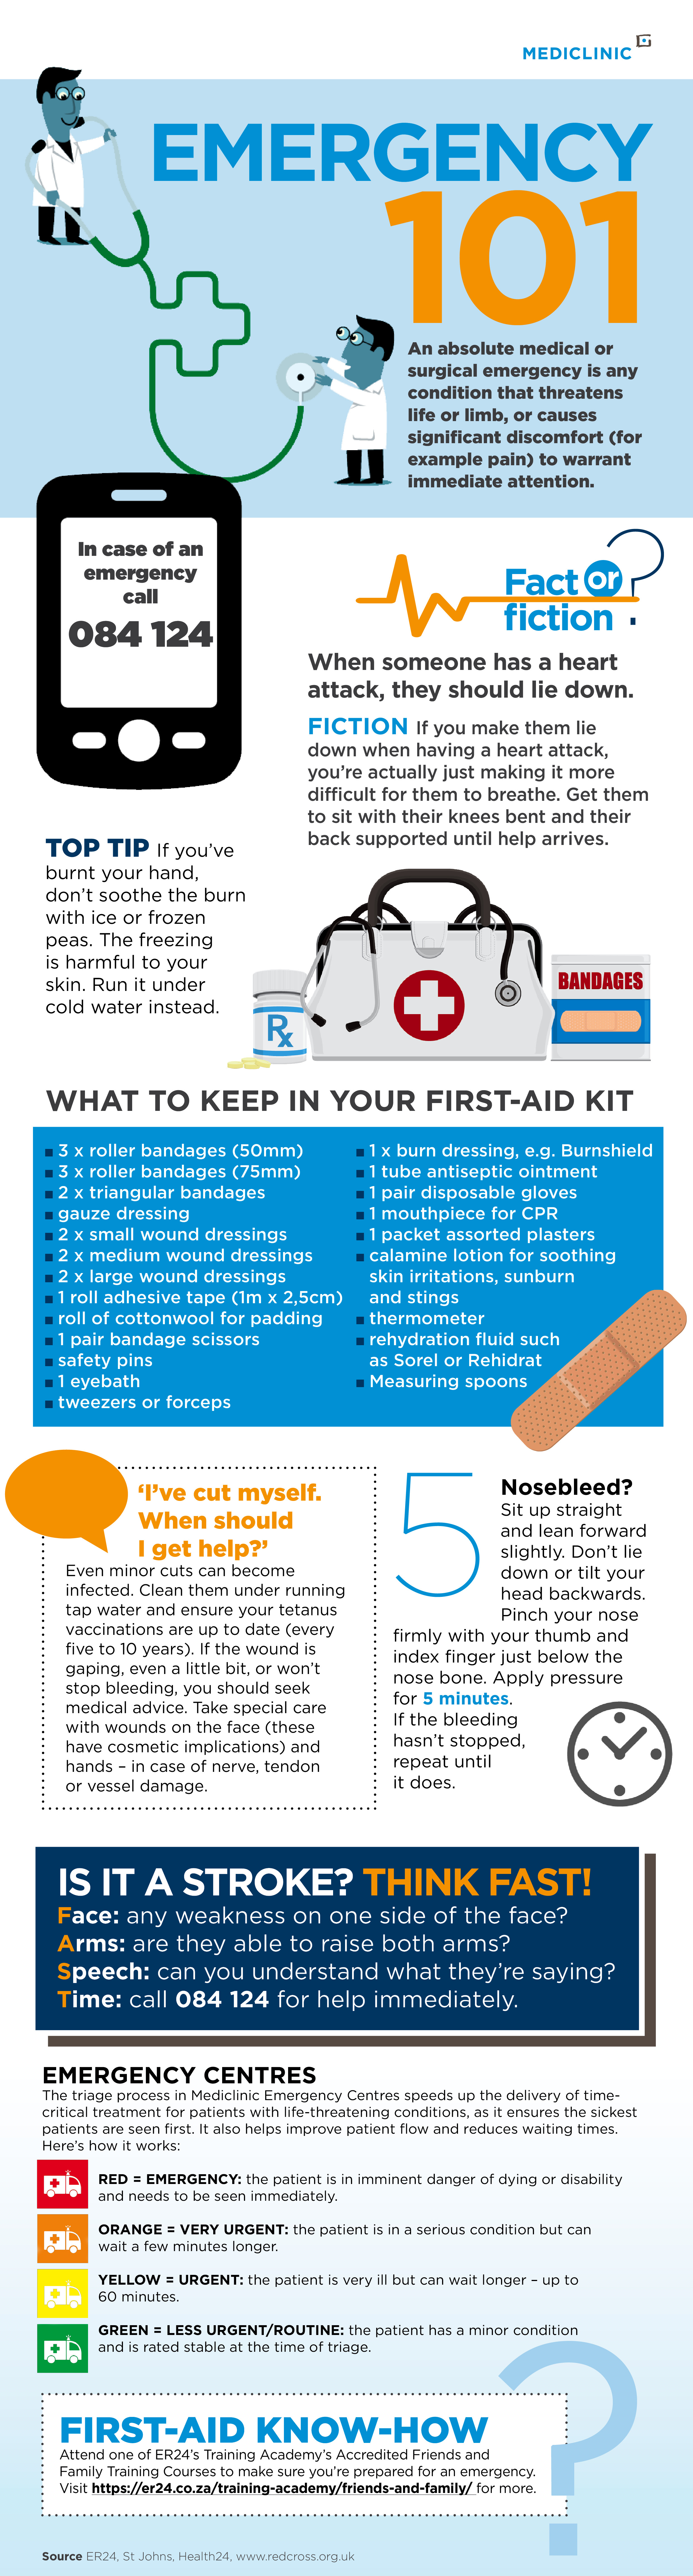 First aid infographic_FINAL